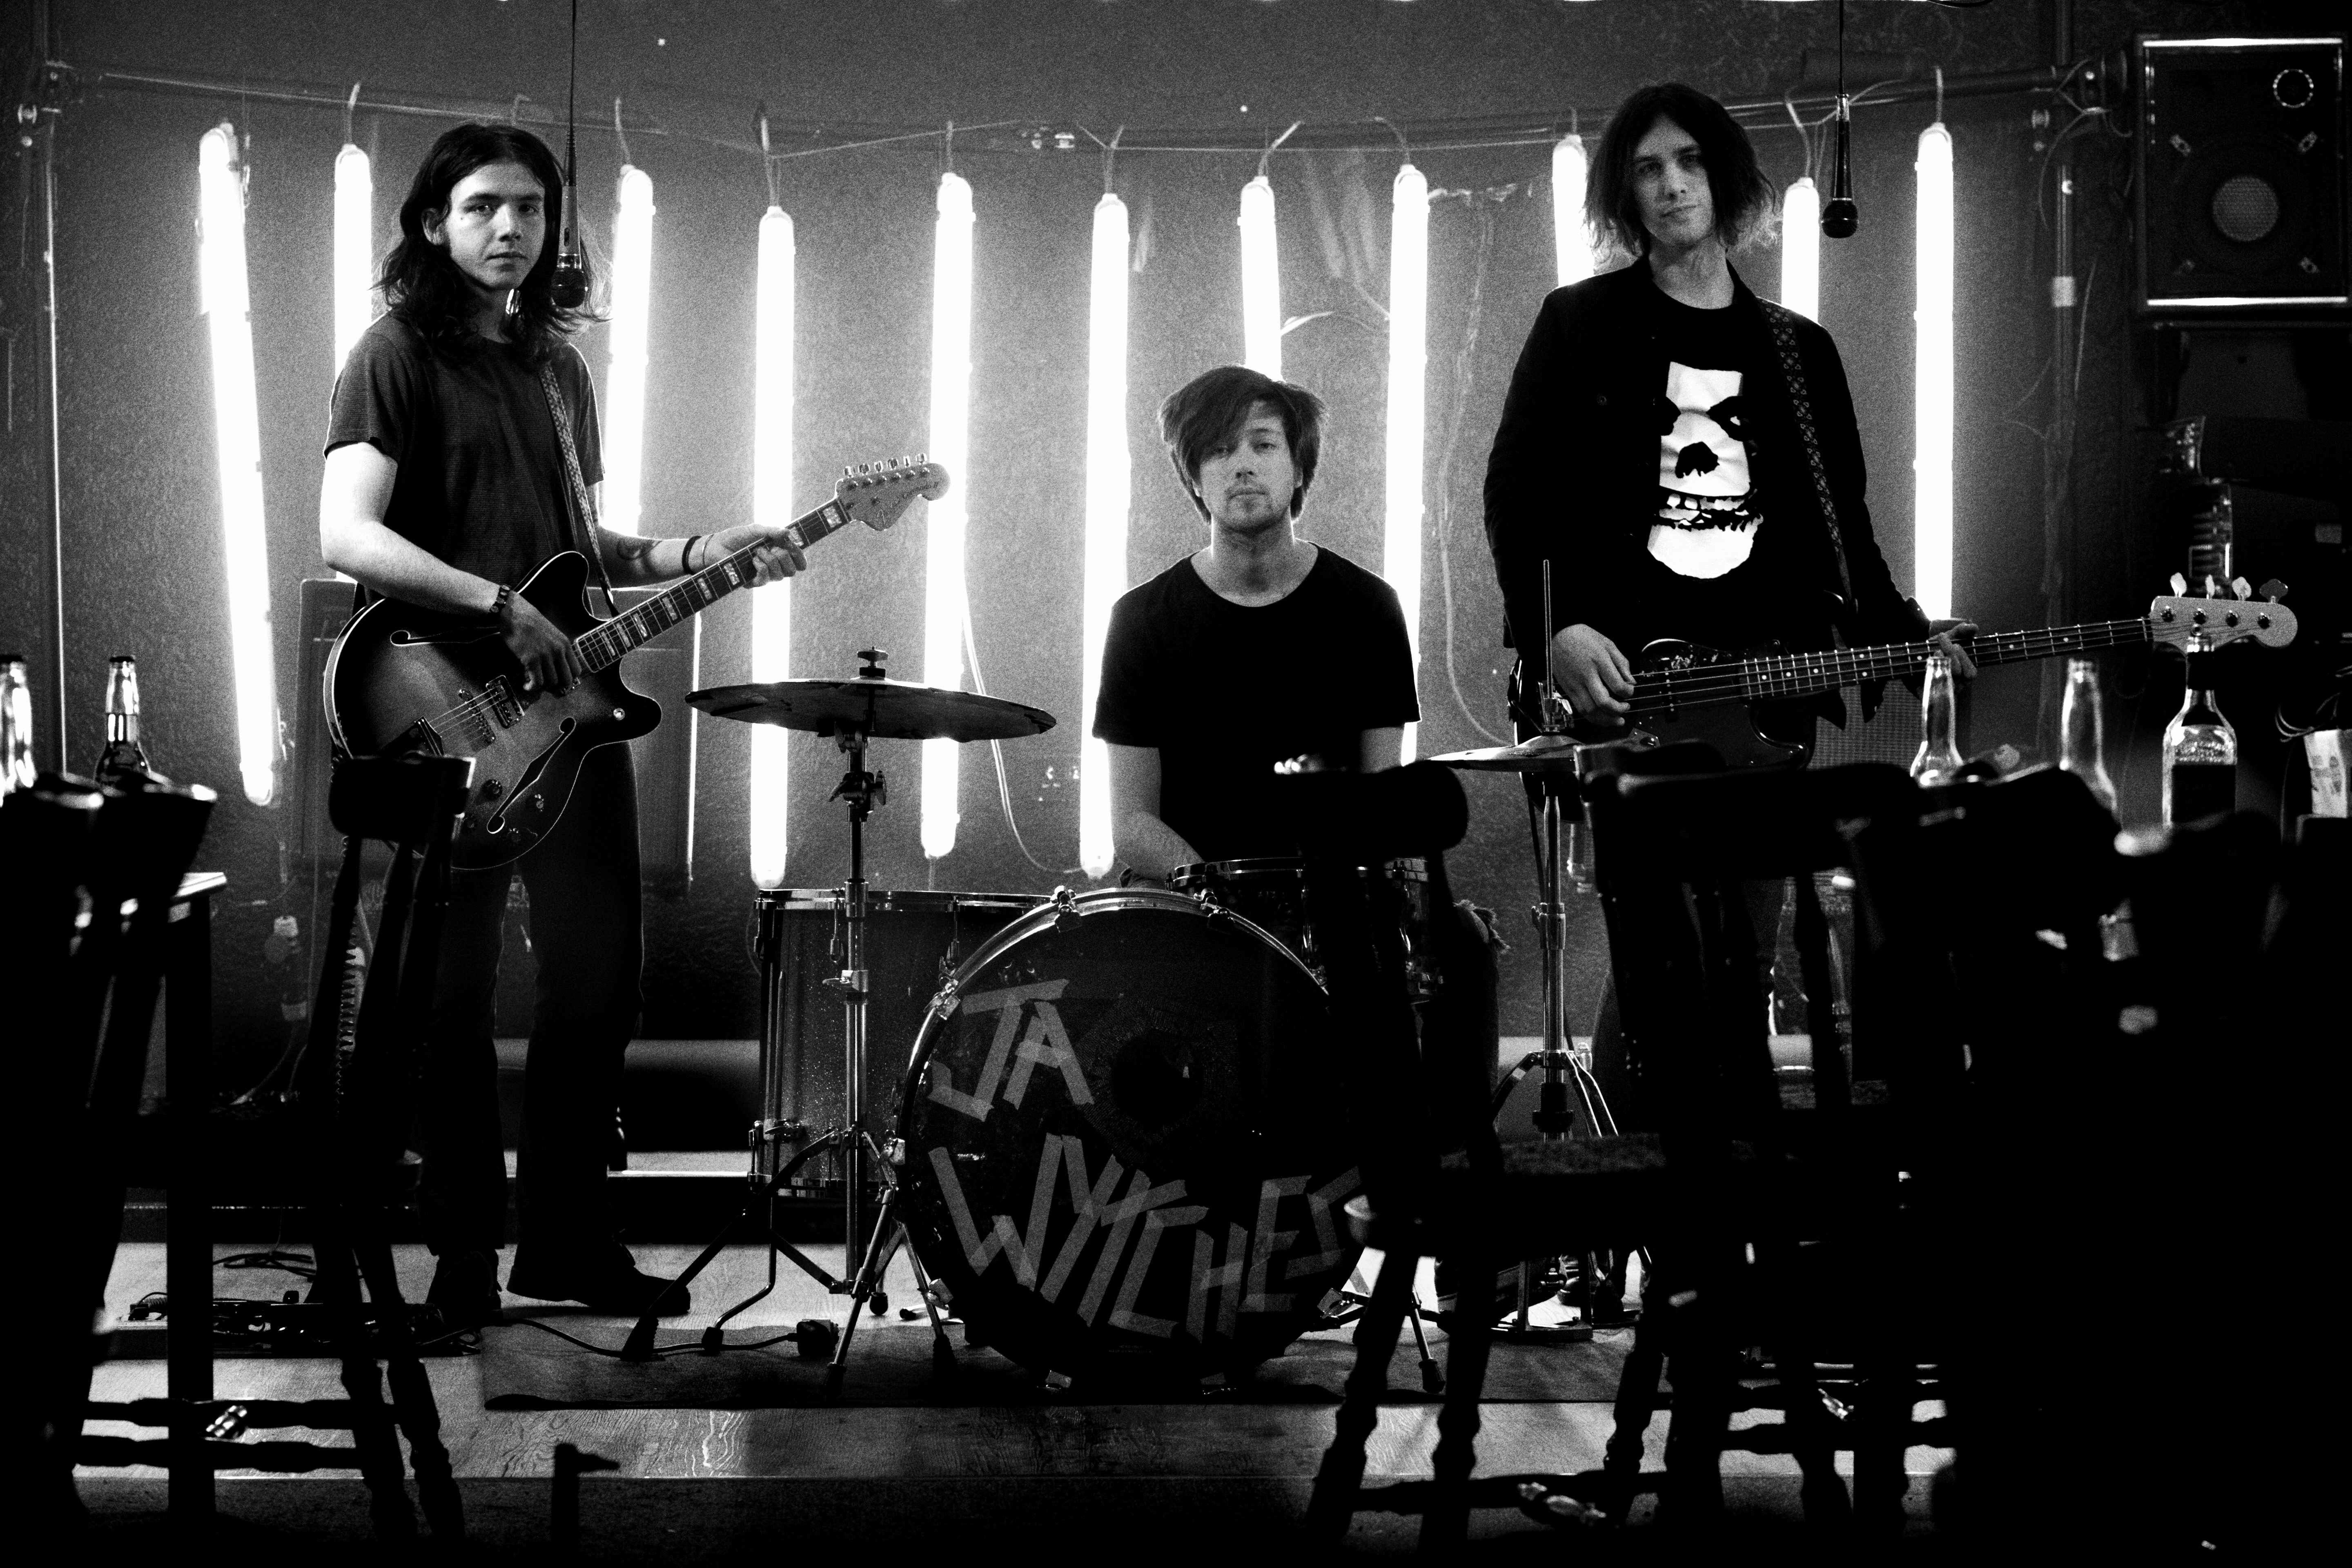 The Wytches Thunder Lizard's Reprieve EP is available below as a free download via Scion Audio